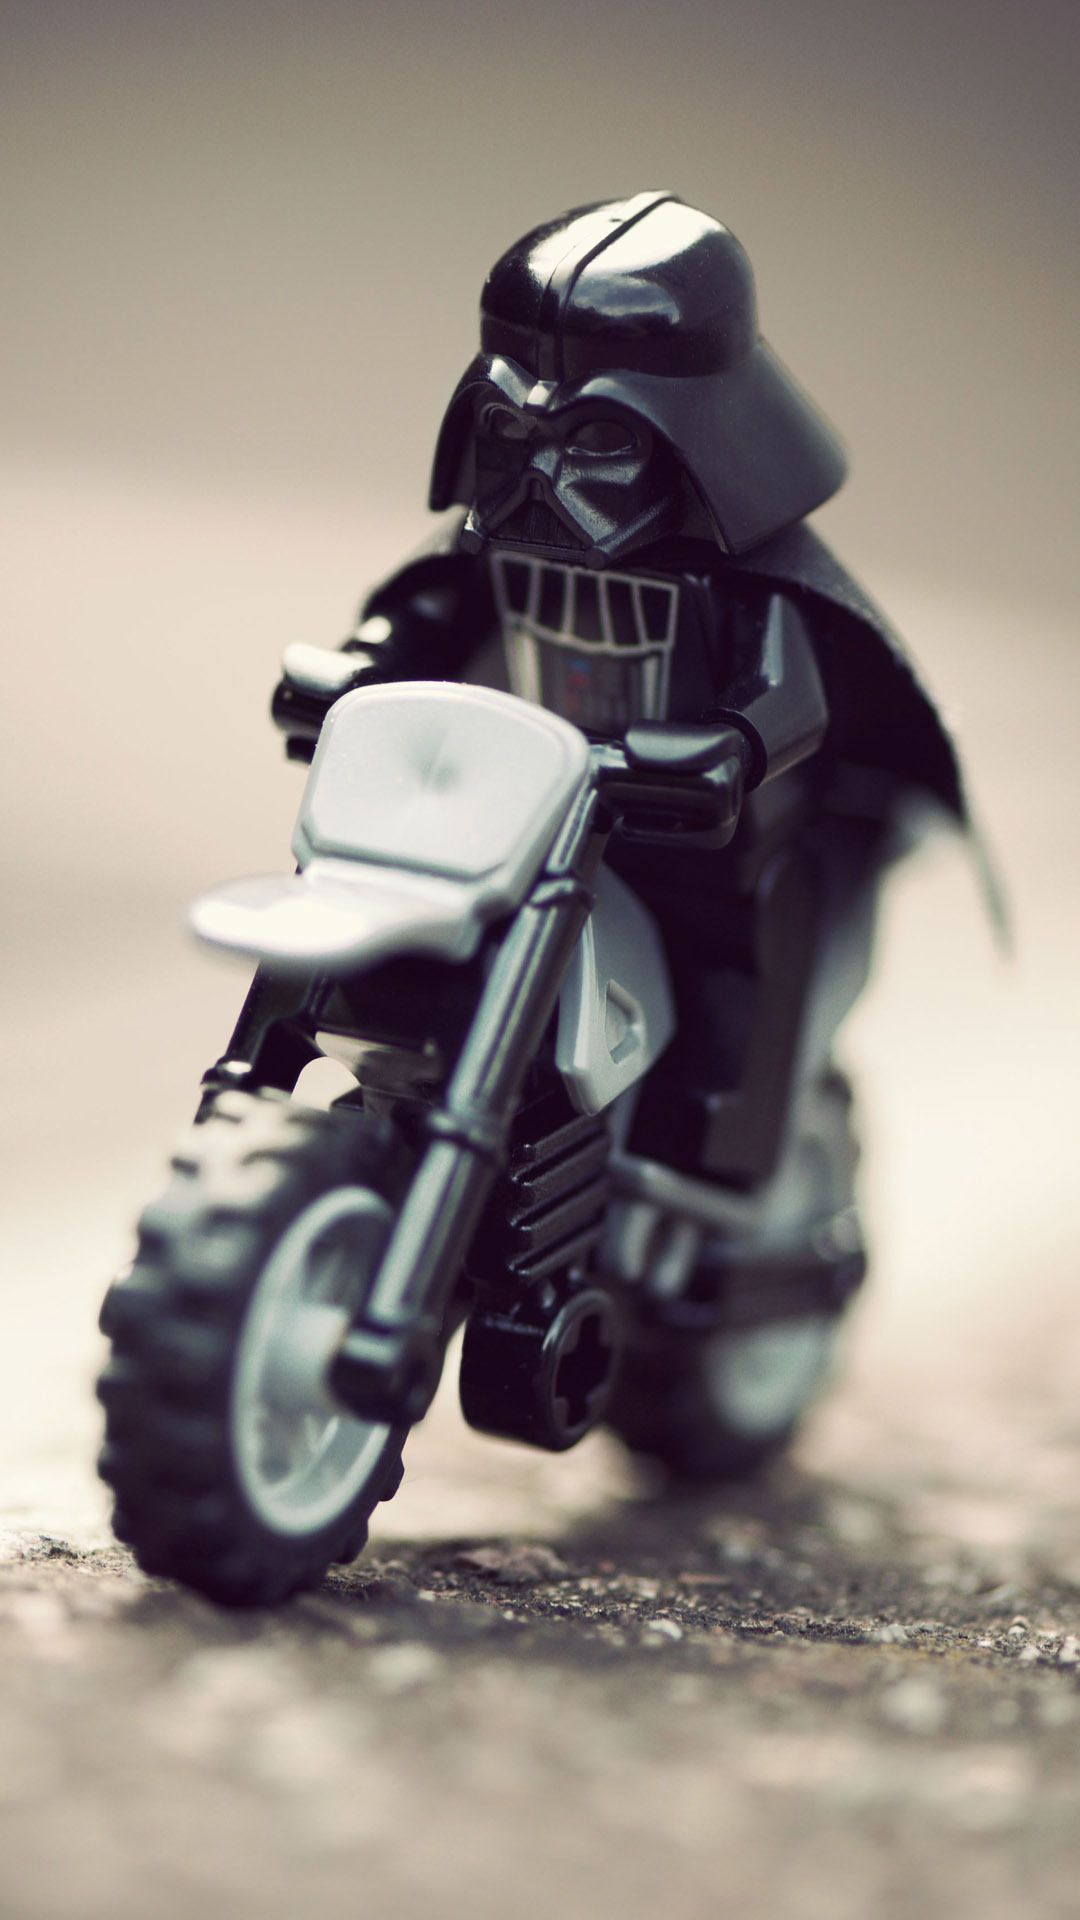 Darth Vader On A Motorcycle Star Wars Awesome Darth Vader Wallpaper Star Wars Wallpaper